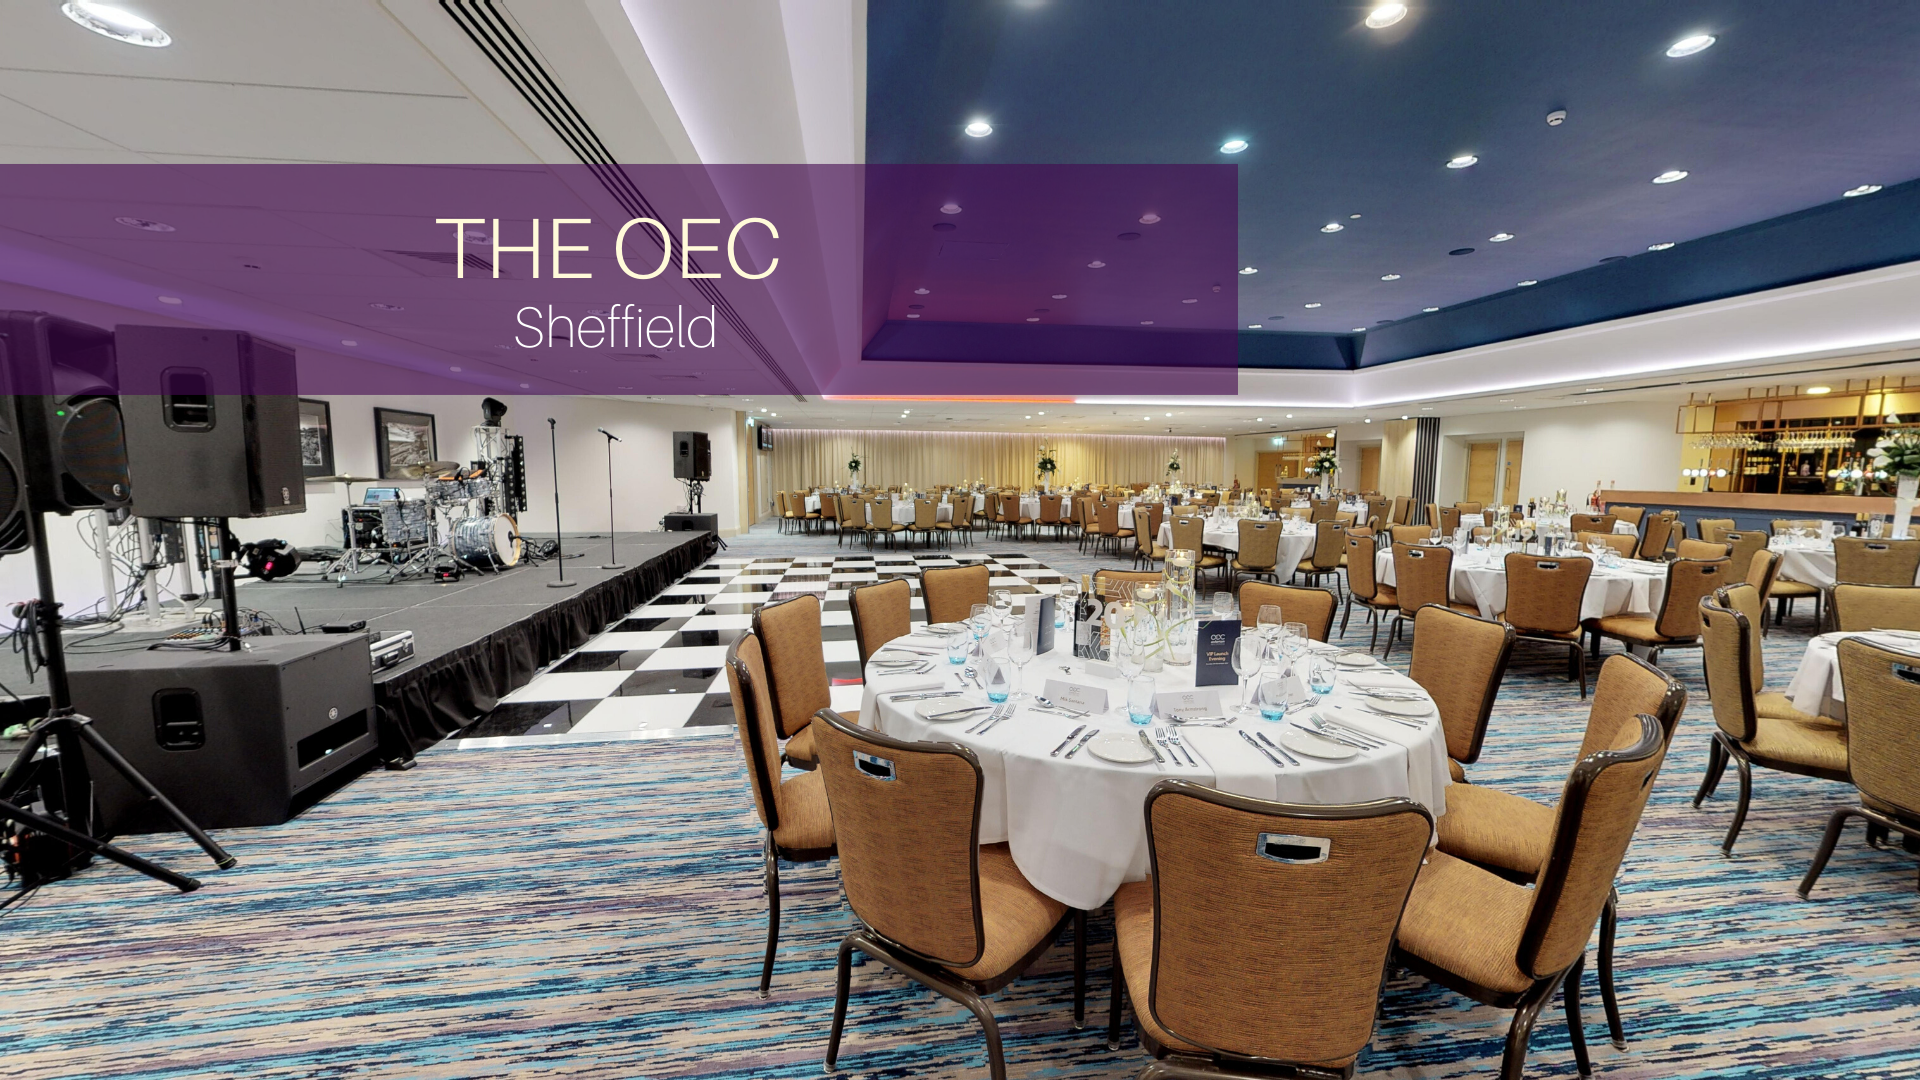 The OEC, Sheffield